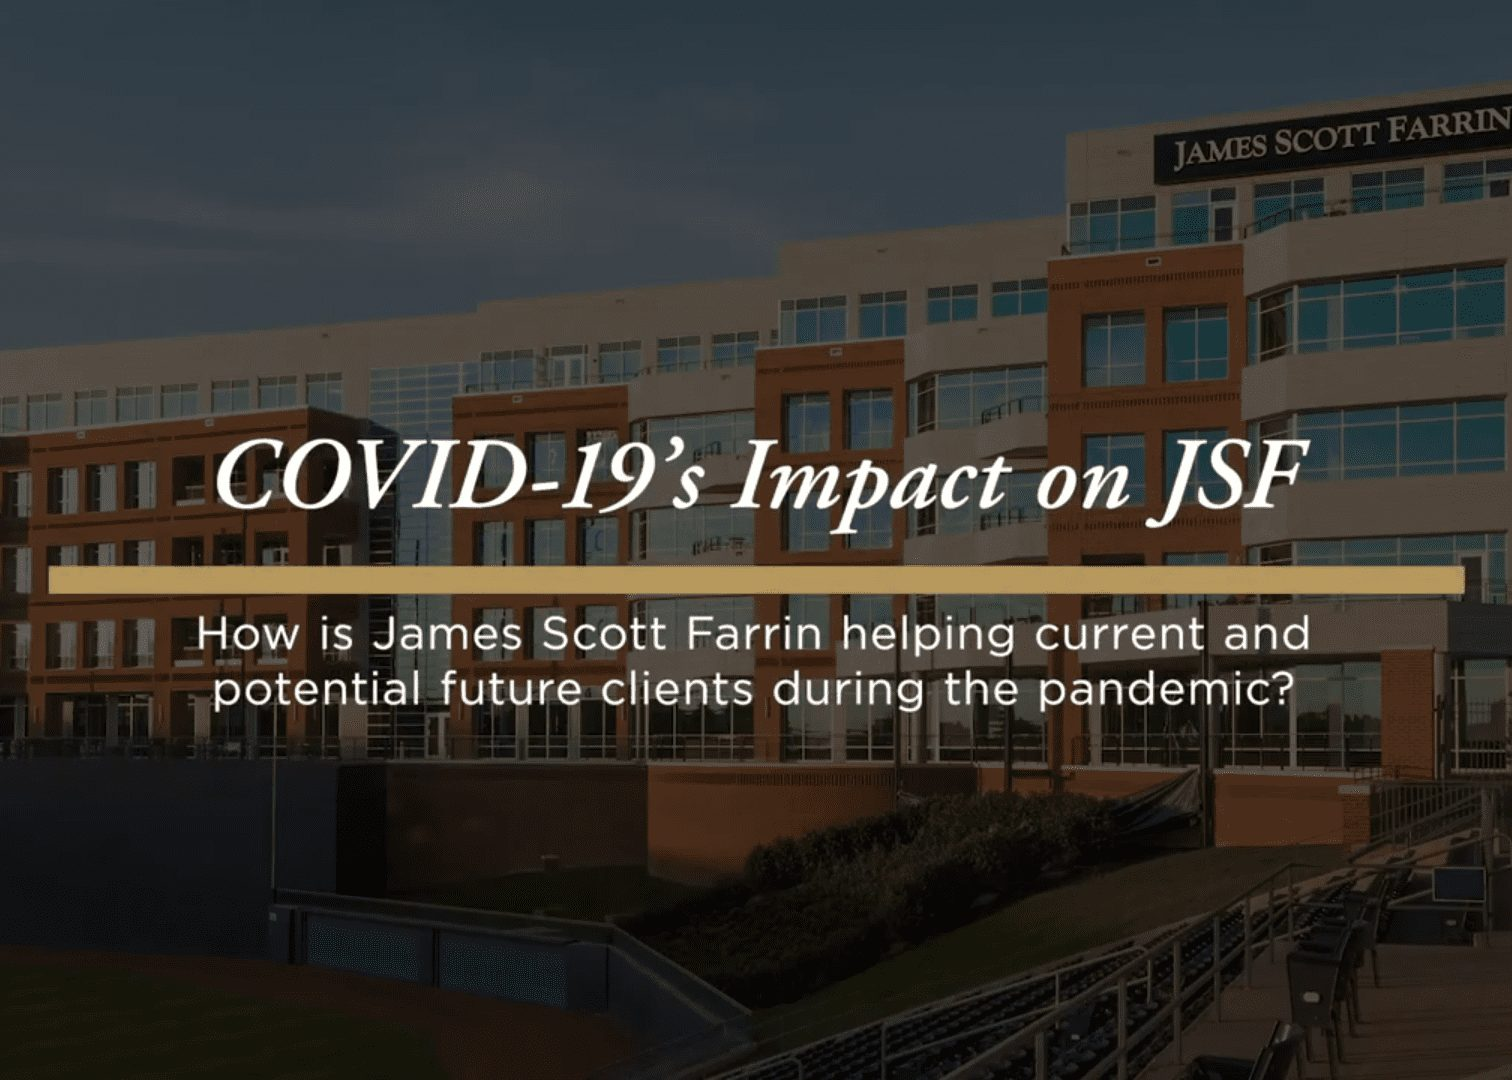 How is James Scott Farrin helping clients during the COVID-19 pandemic?